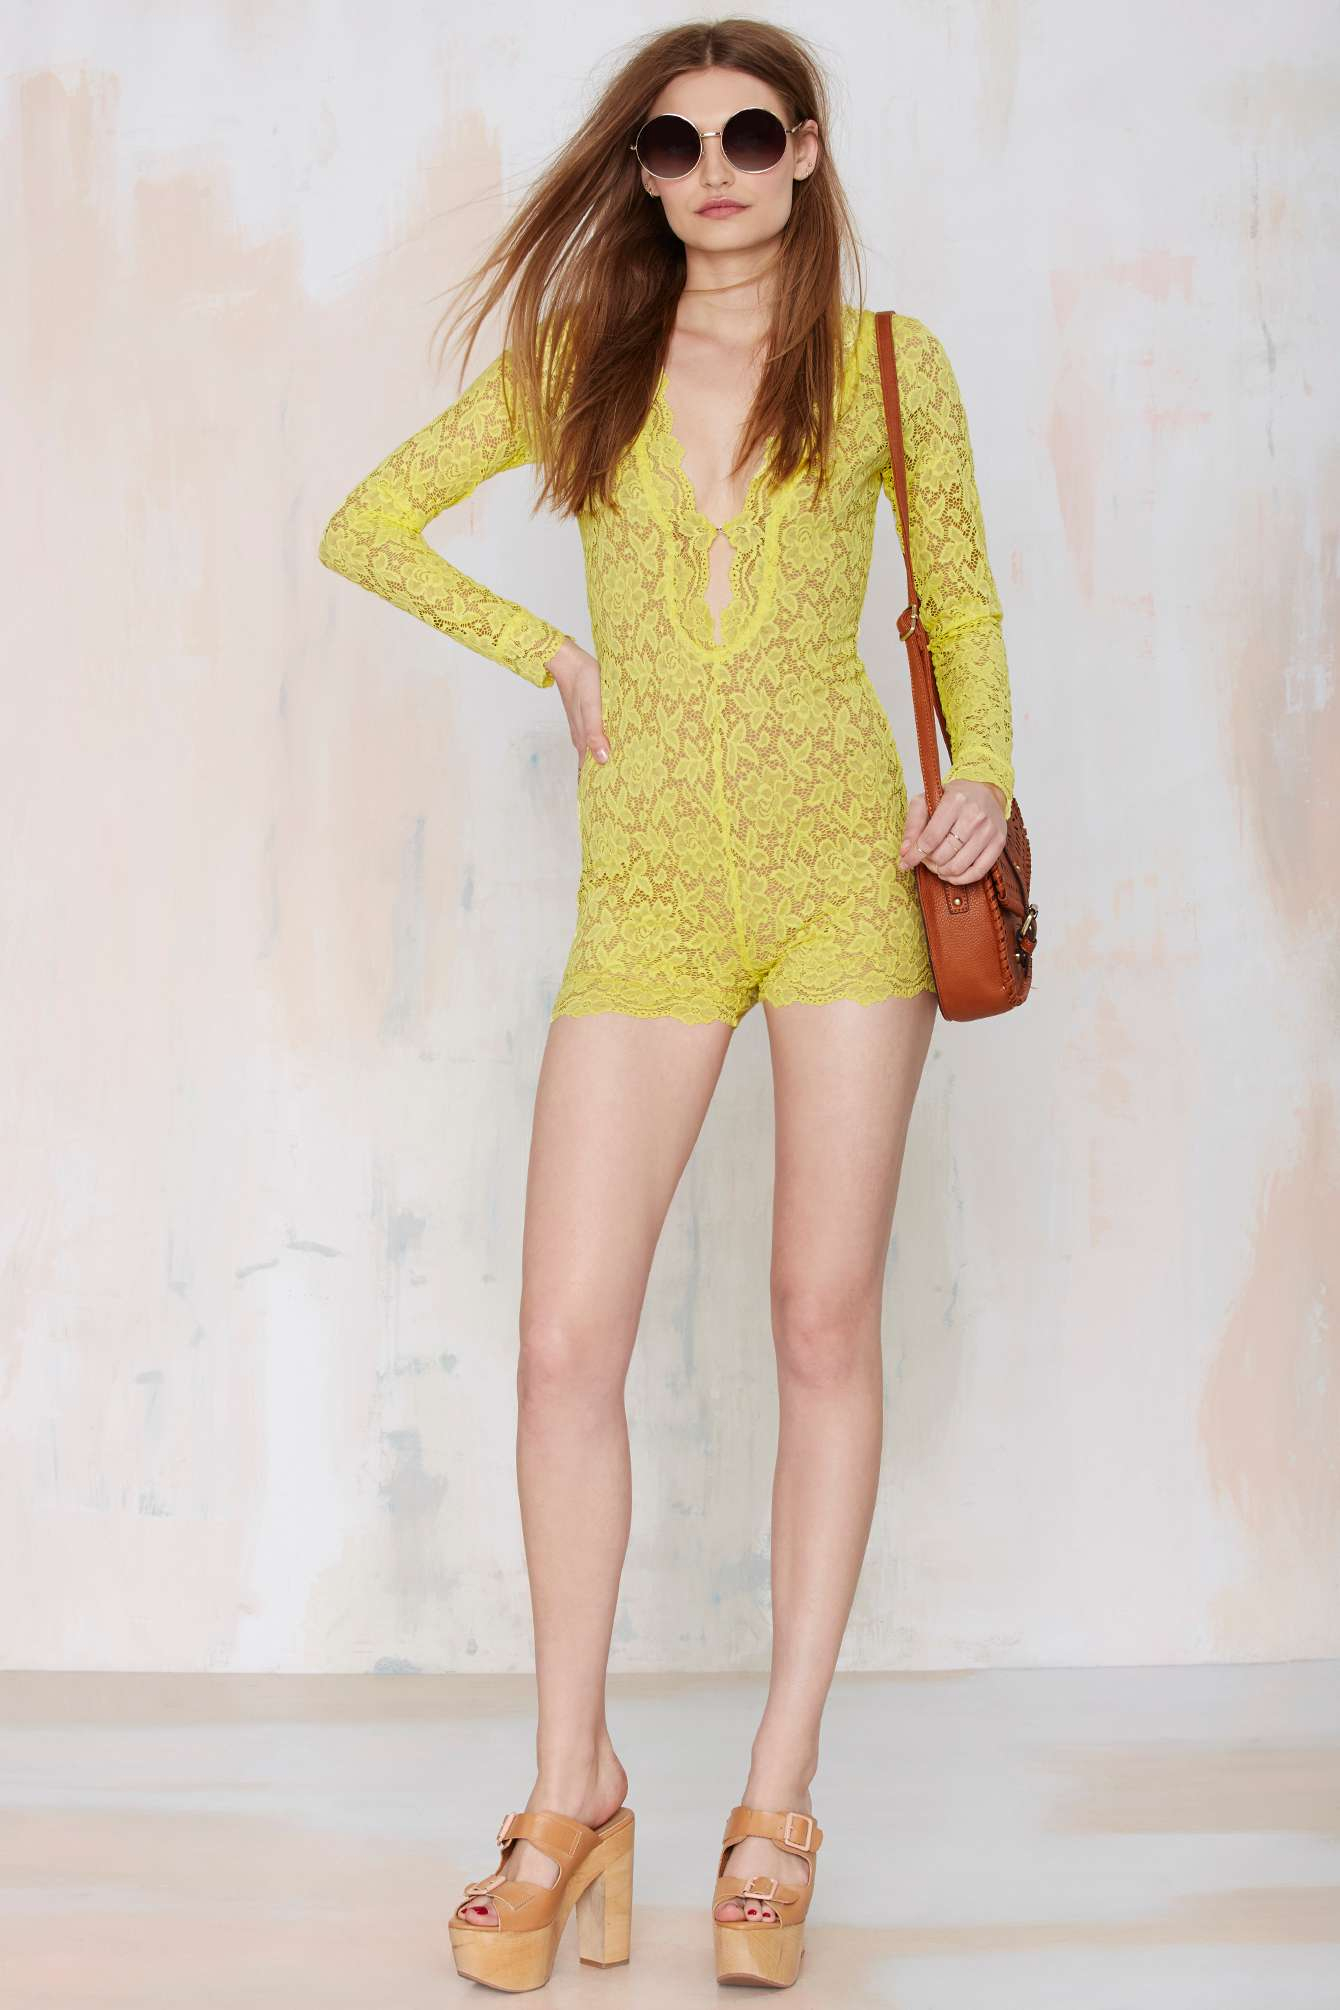 41733ee0d1f Lyst - Nasty Gal Gimme Shelter Lace Romper in Yellow